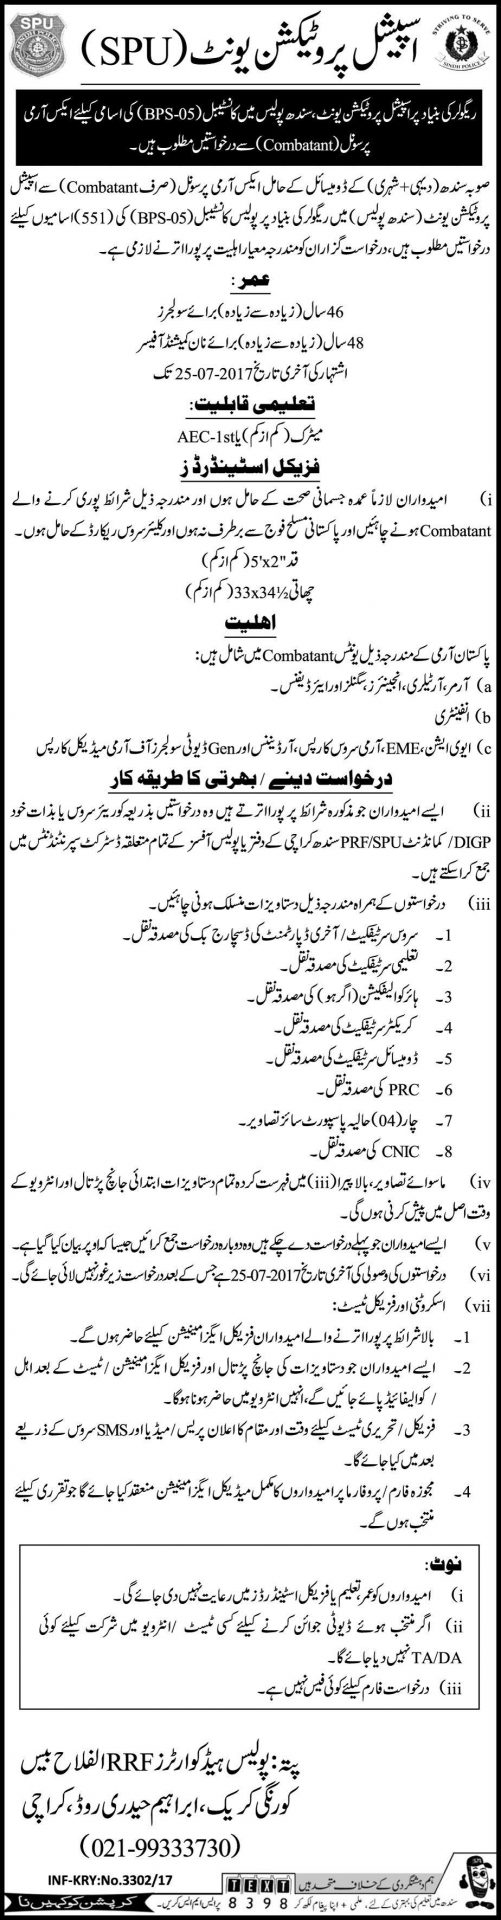 SPU Sindh Police Constable Jobs 2017 Application Form Last Date